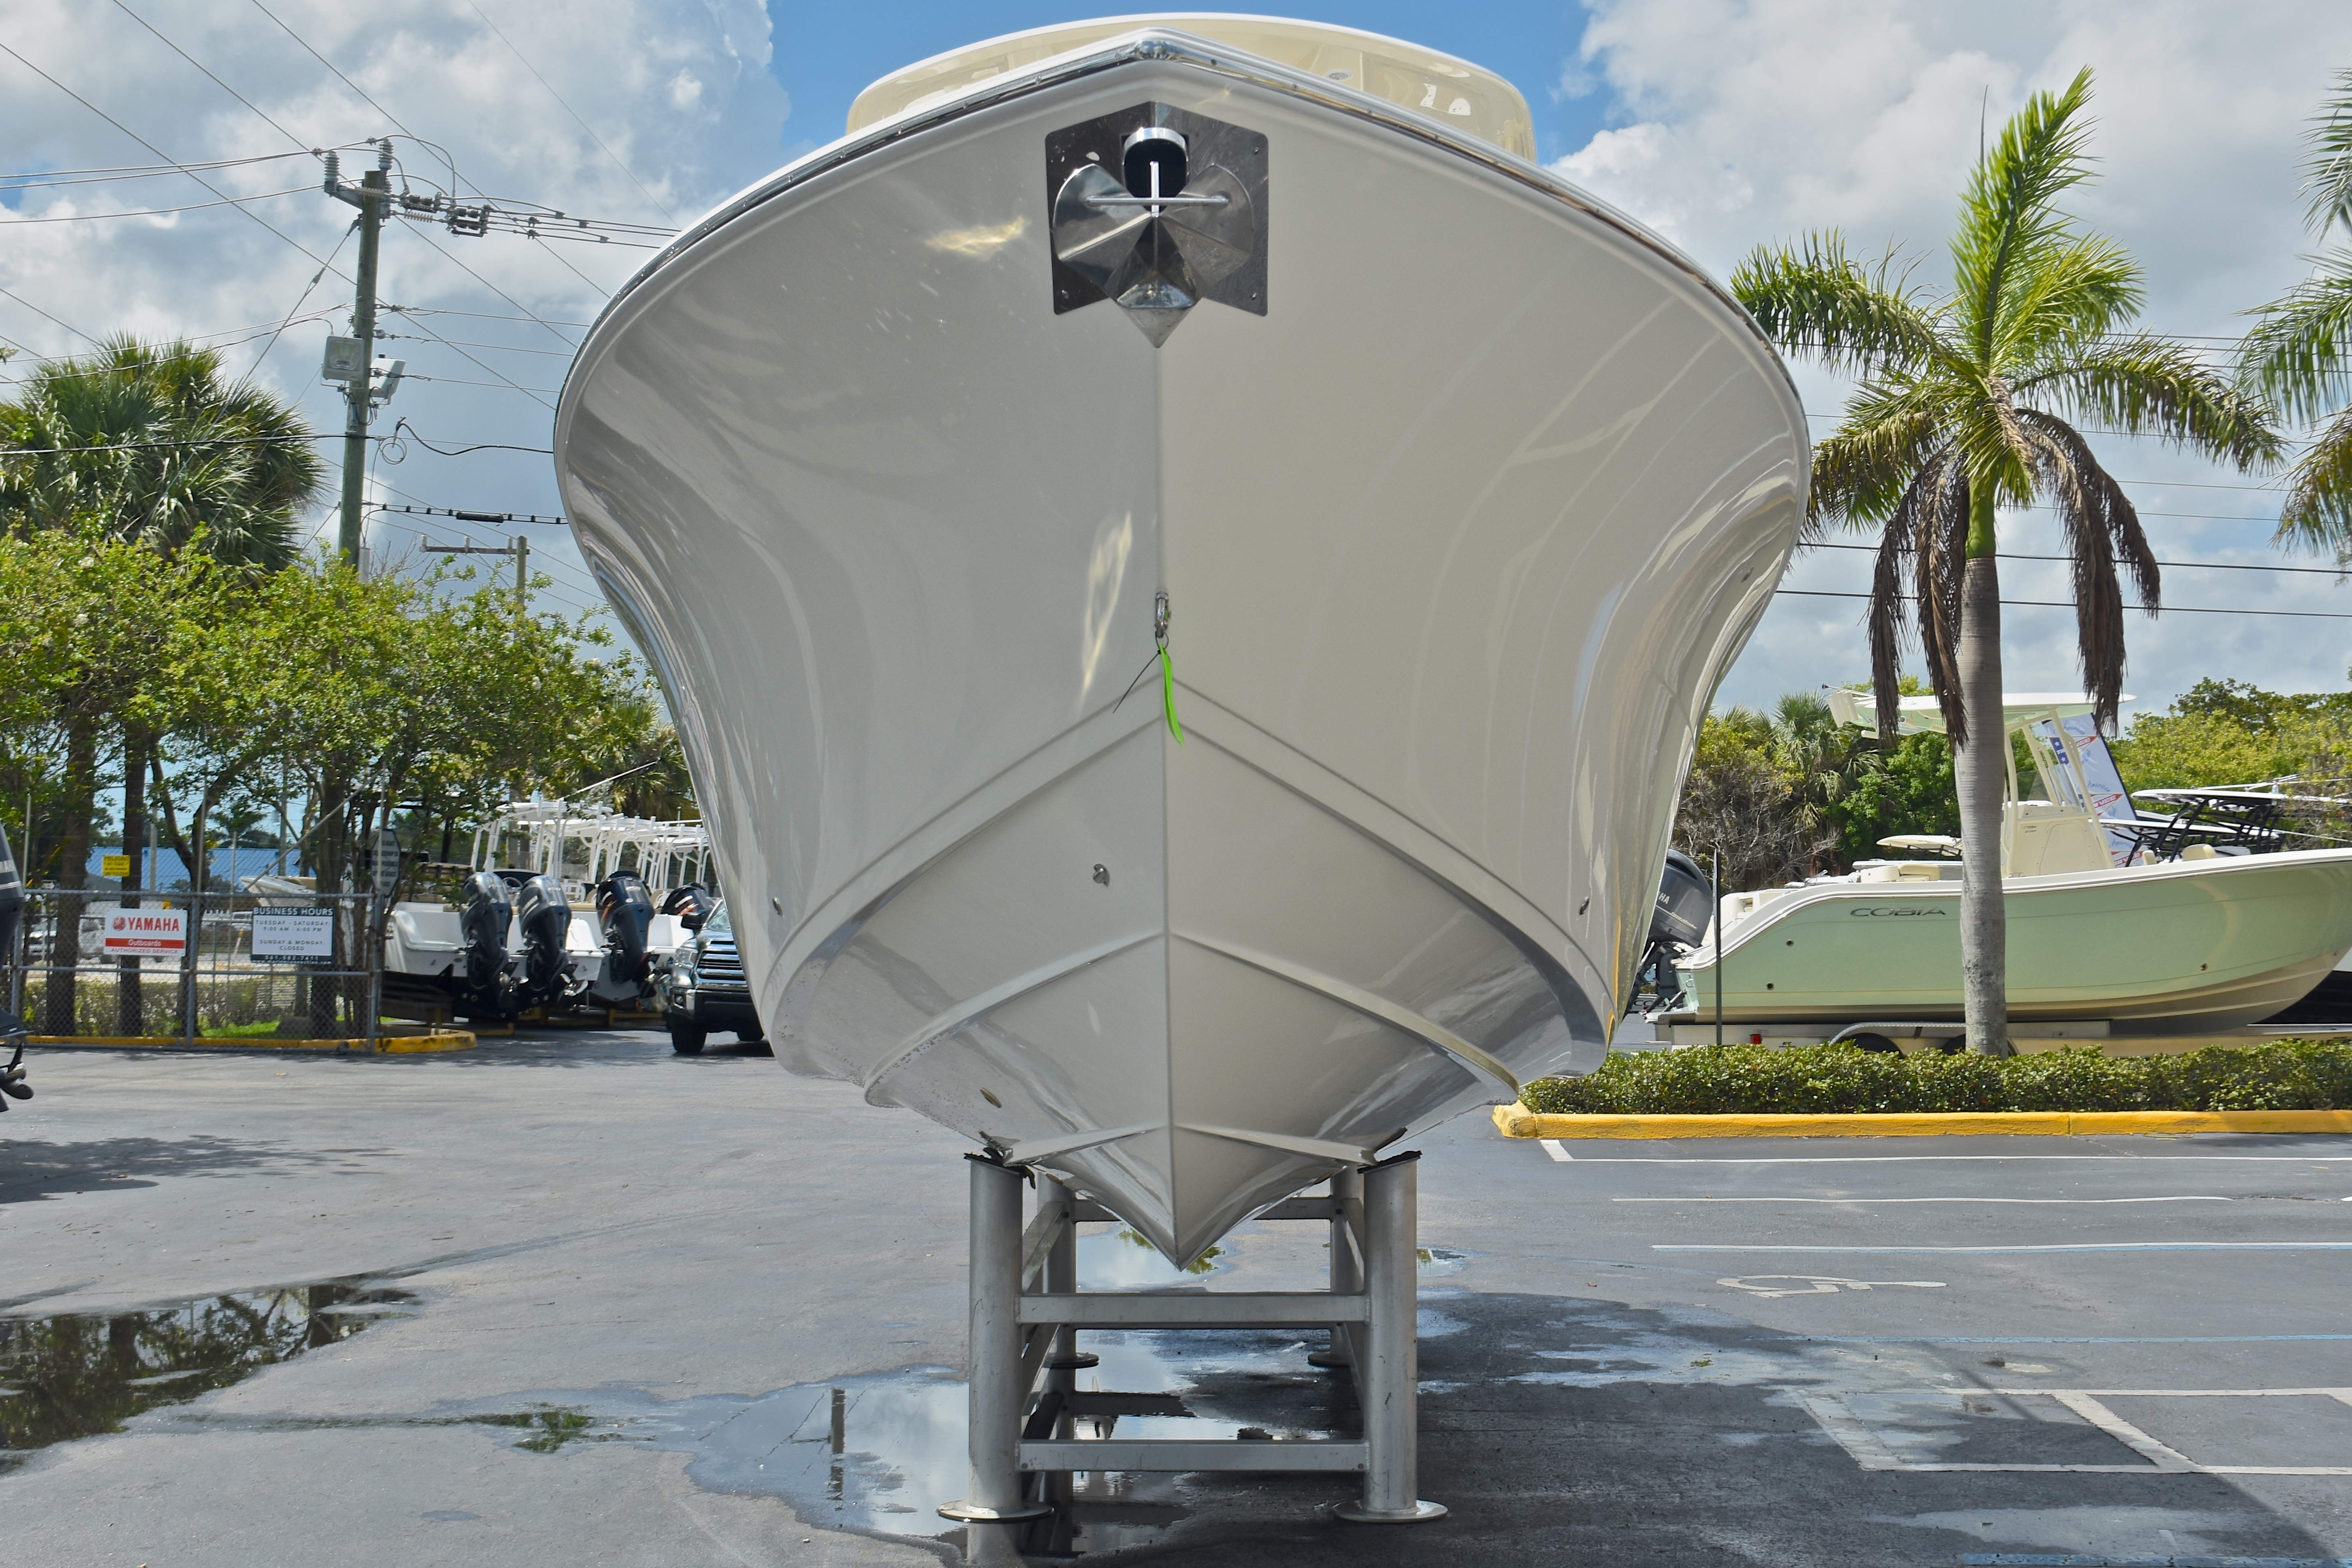 Thumbnail 3 for New 2017 Cobia 296 Center Console boat for sale in West Palm Beach, FL